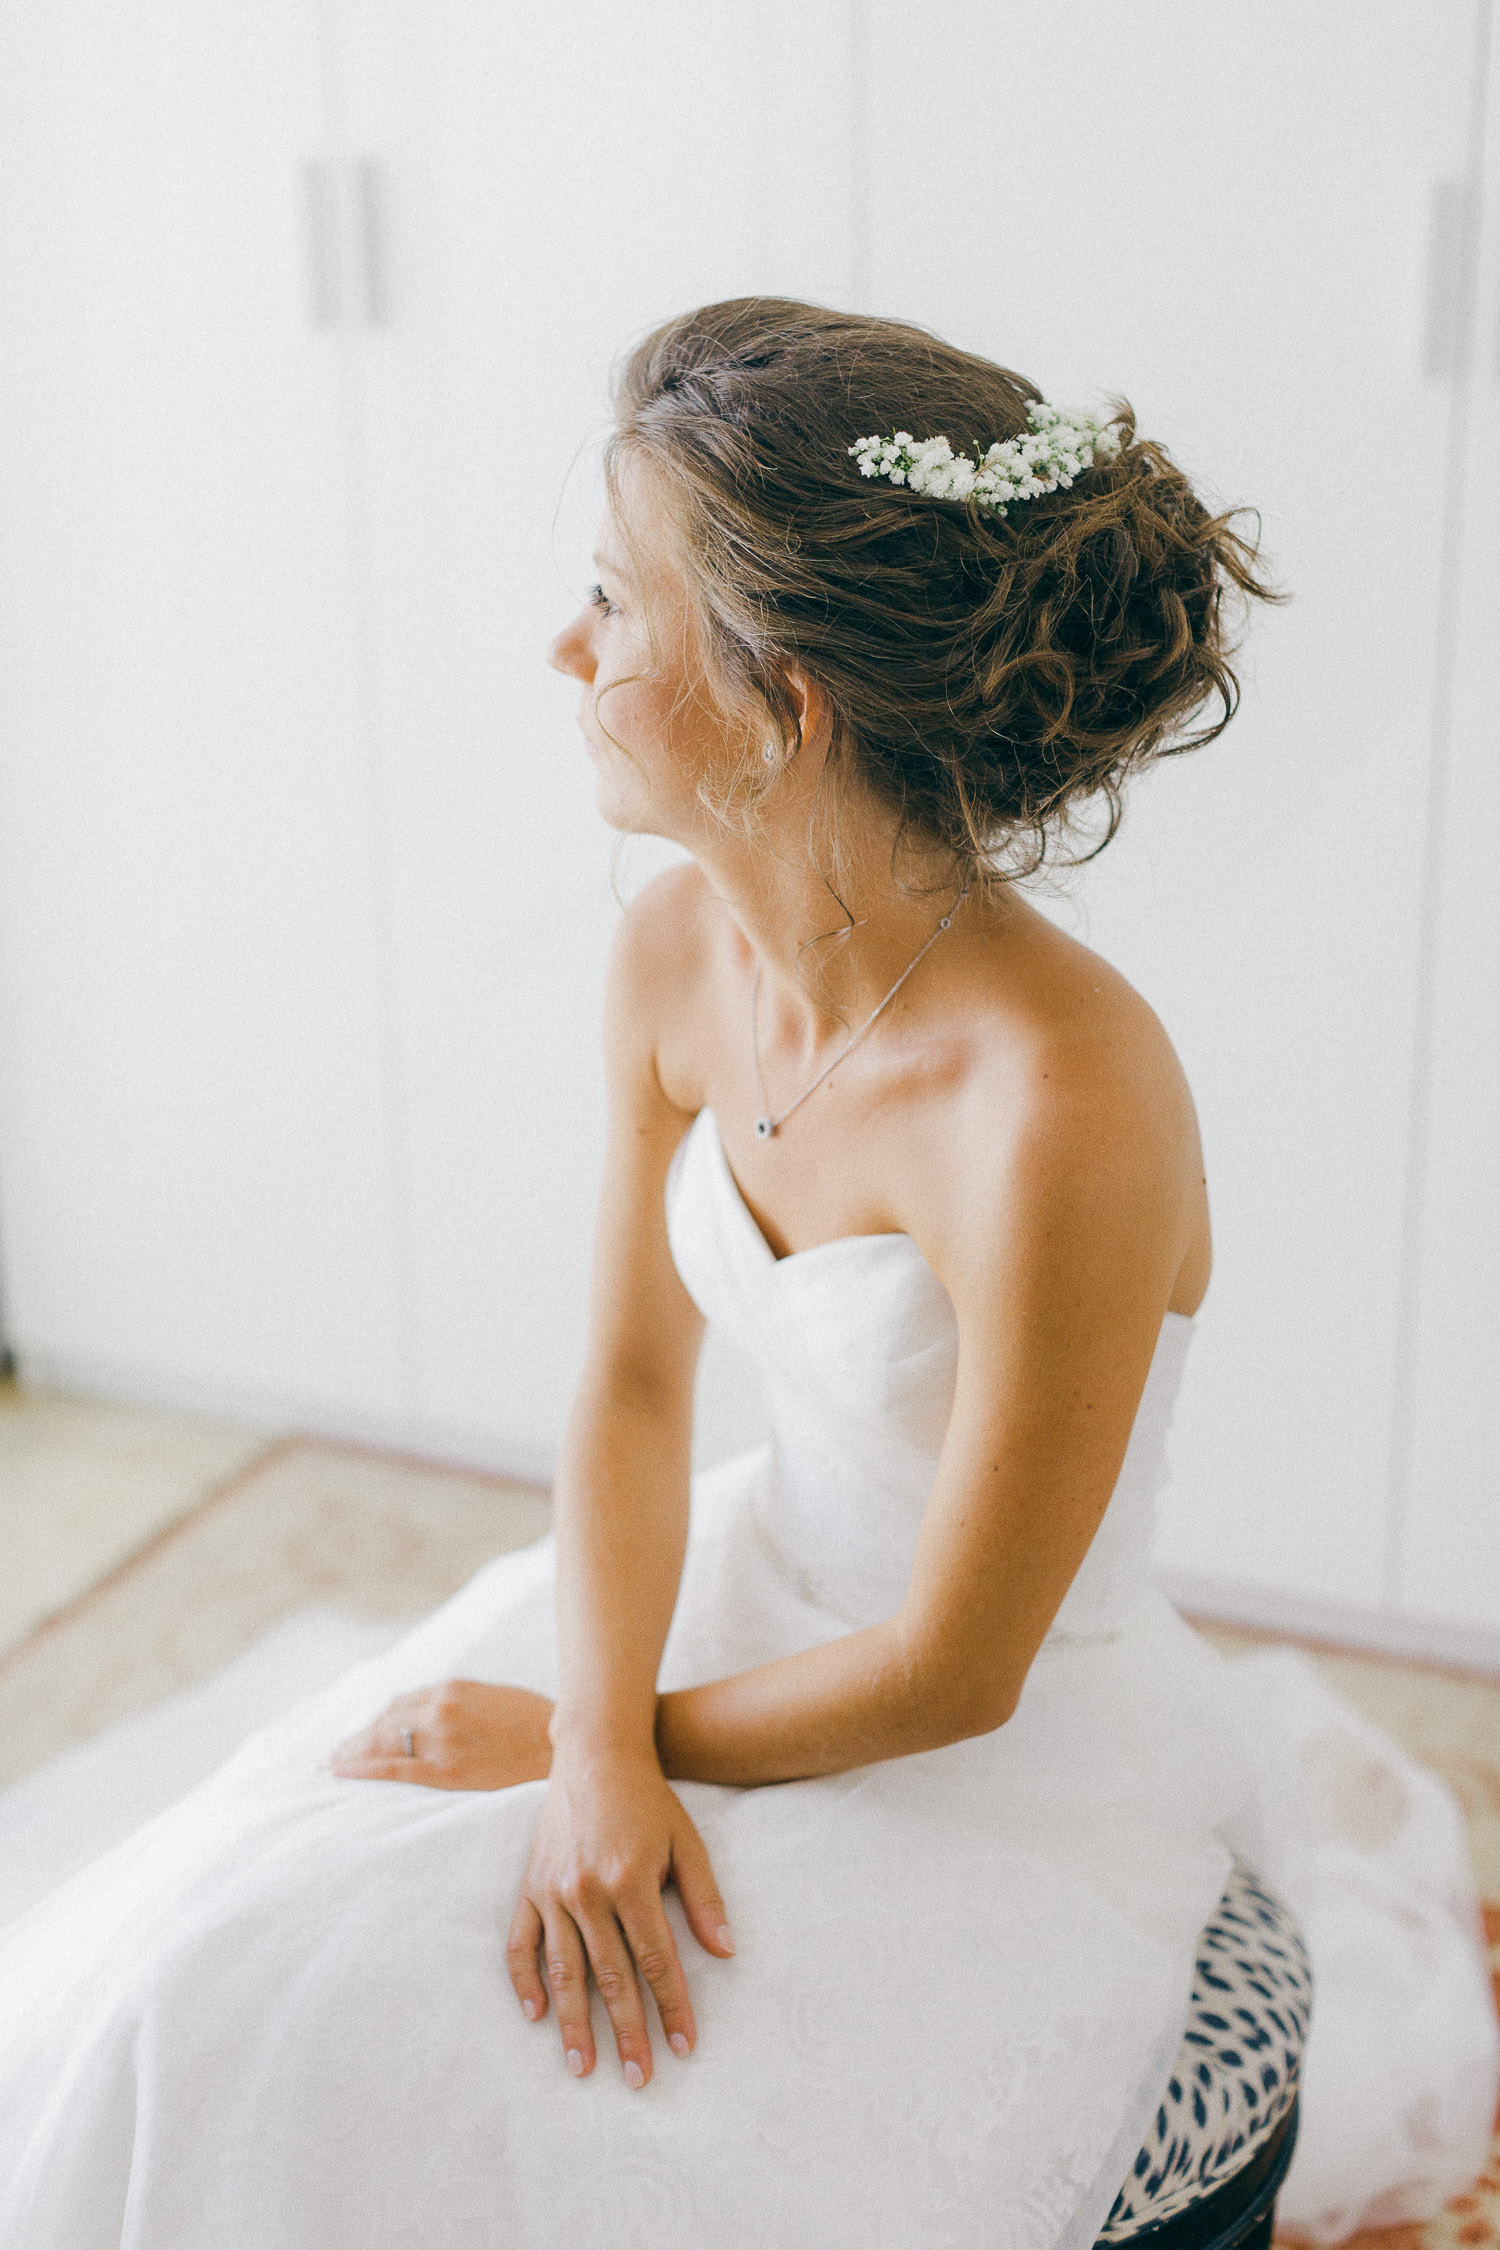 Fairytale bridal hairstyle at an Old World micro wedding in Corfu Isalnd